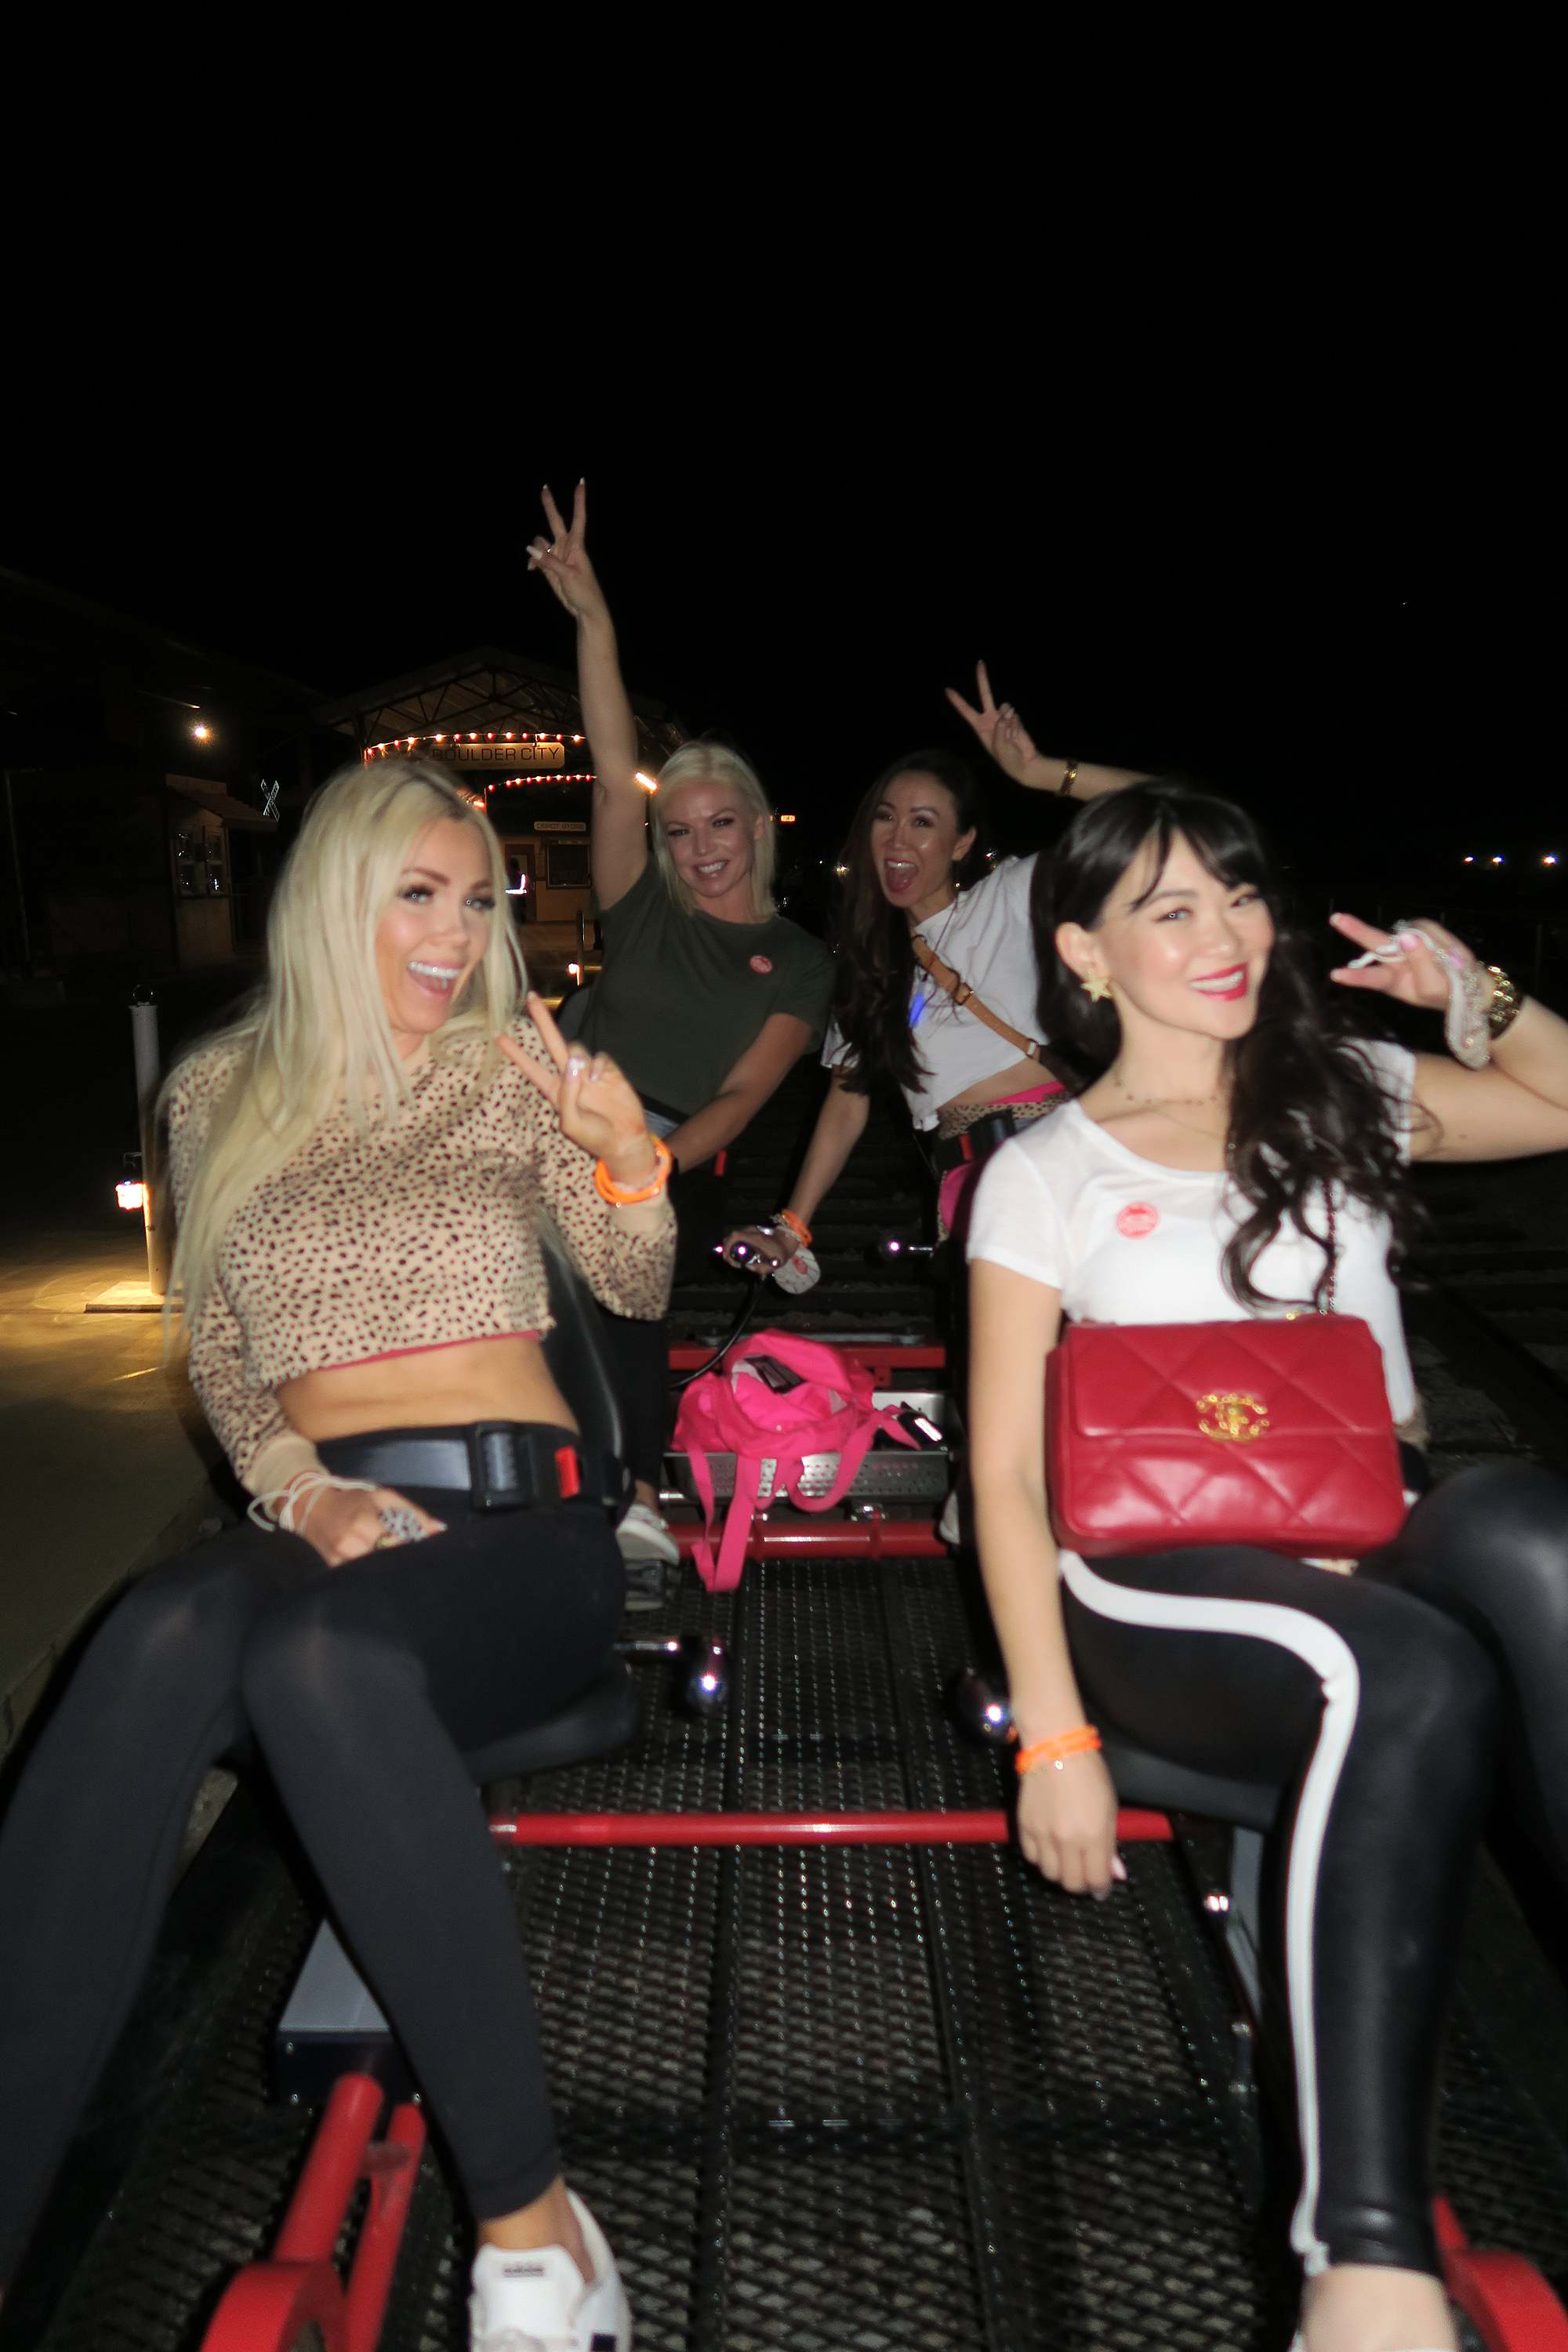 THINGS TO DO IN VEGAS - rail biking in Boulder City just 30 minutes outside of vegas on a quad bike with friends